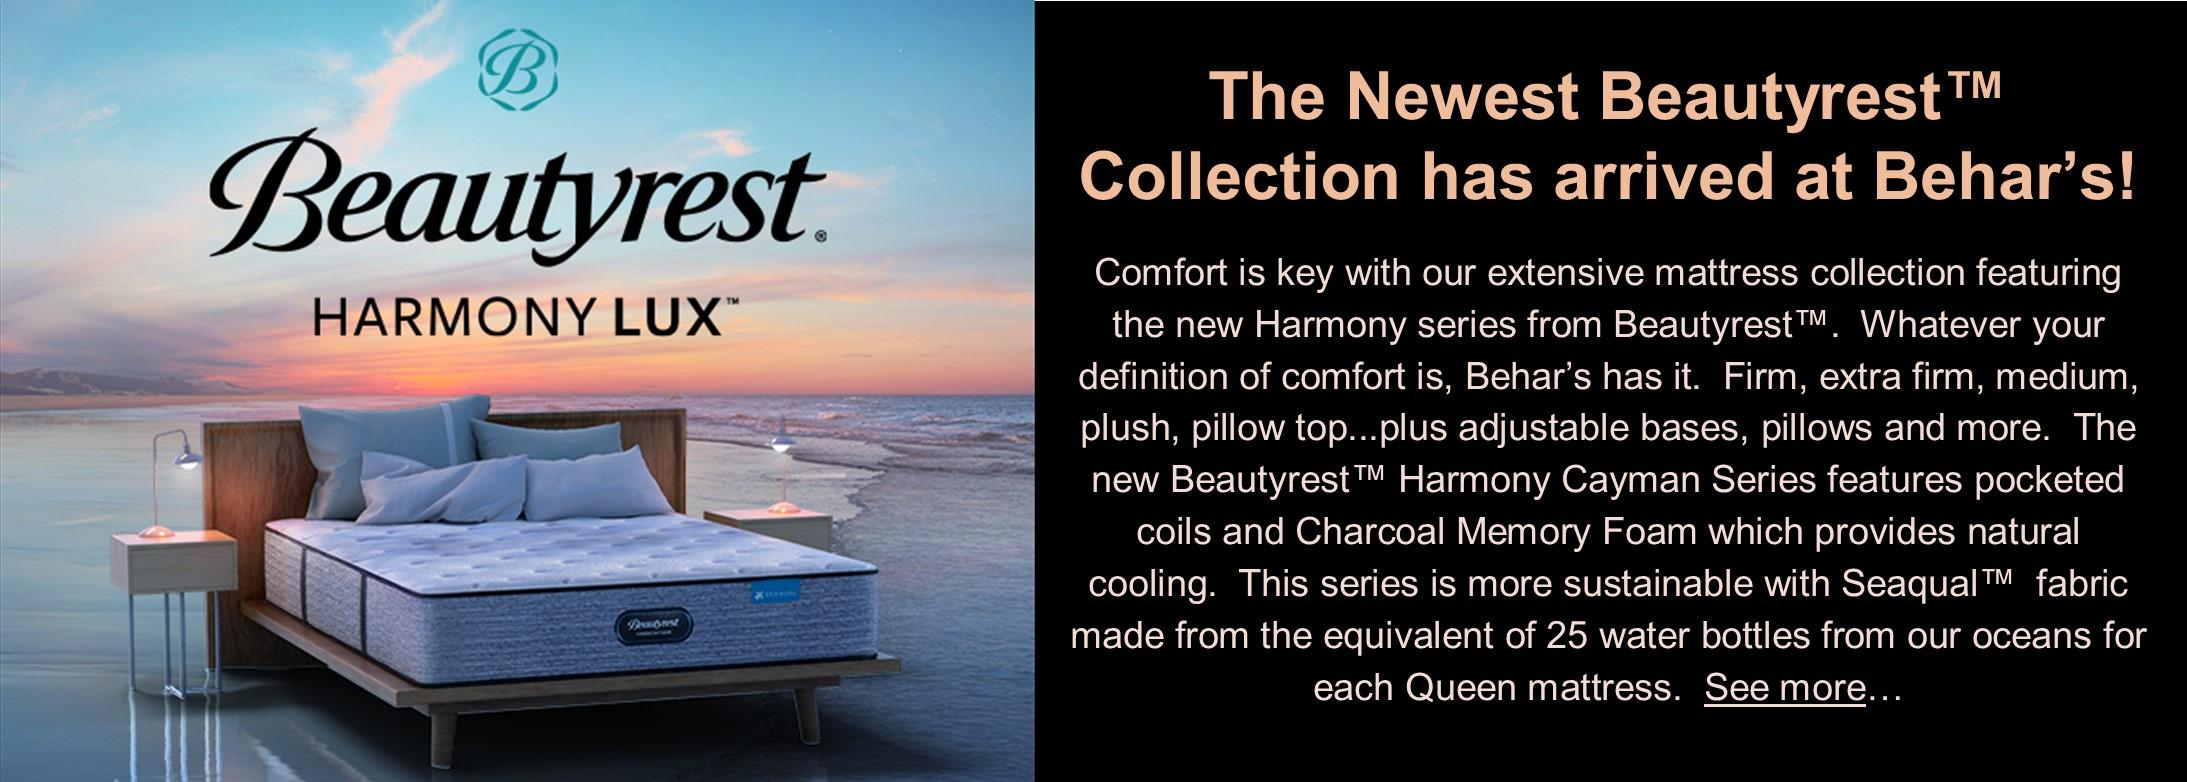 Beautyrest's newest collection!